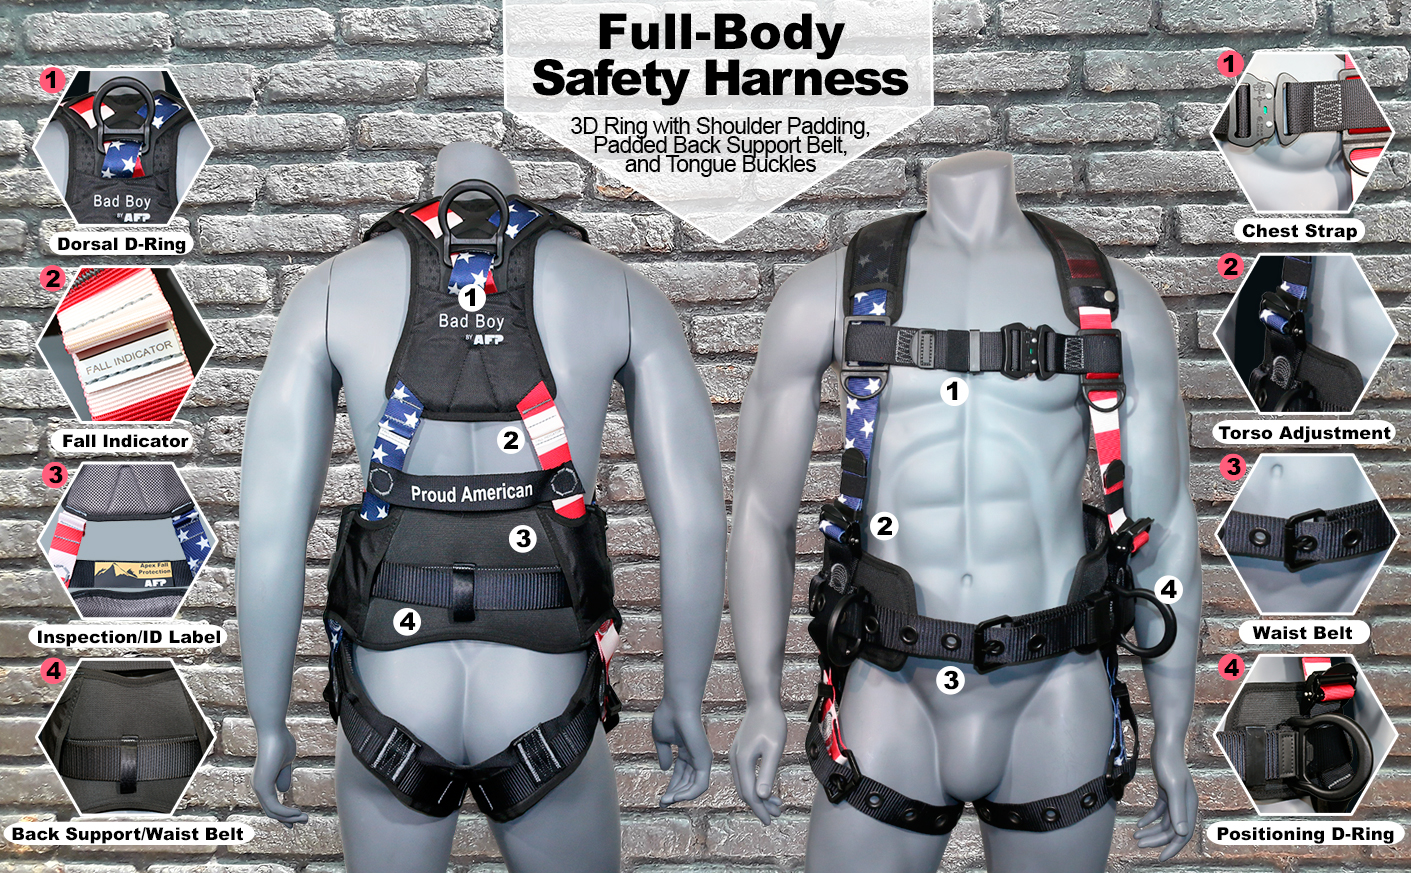 """AFP Fall Protection Full-Body Premium American Flag Safety Harness, Vented & Padded Shoulder, Legs & Back, 8"""" Thick Back Support Belt, Aluminum D-Rings, Tongue Buckle, Quick Release (OSHA/ANSI PPE)"""